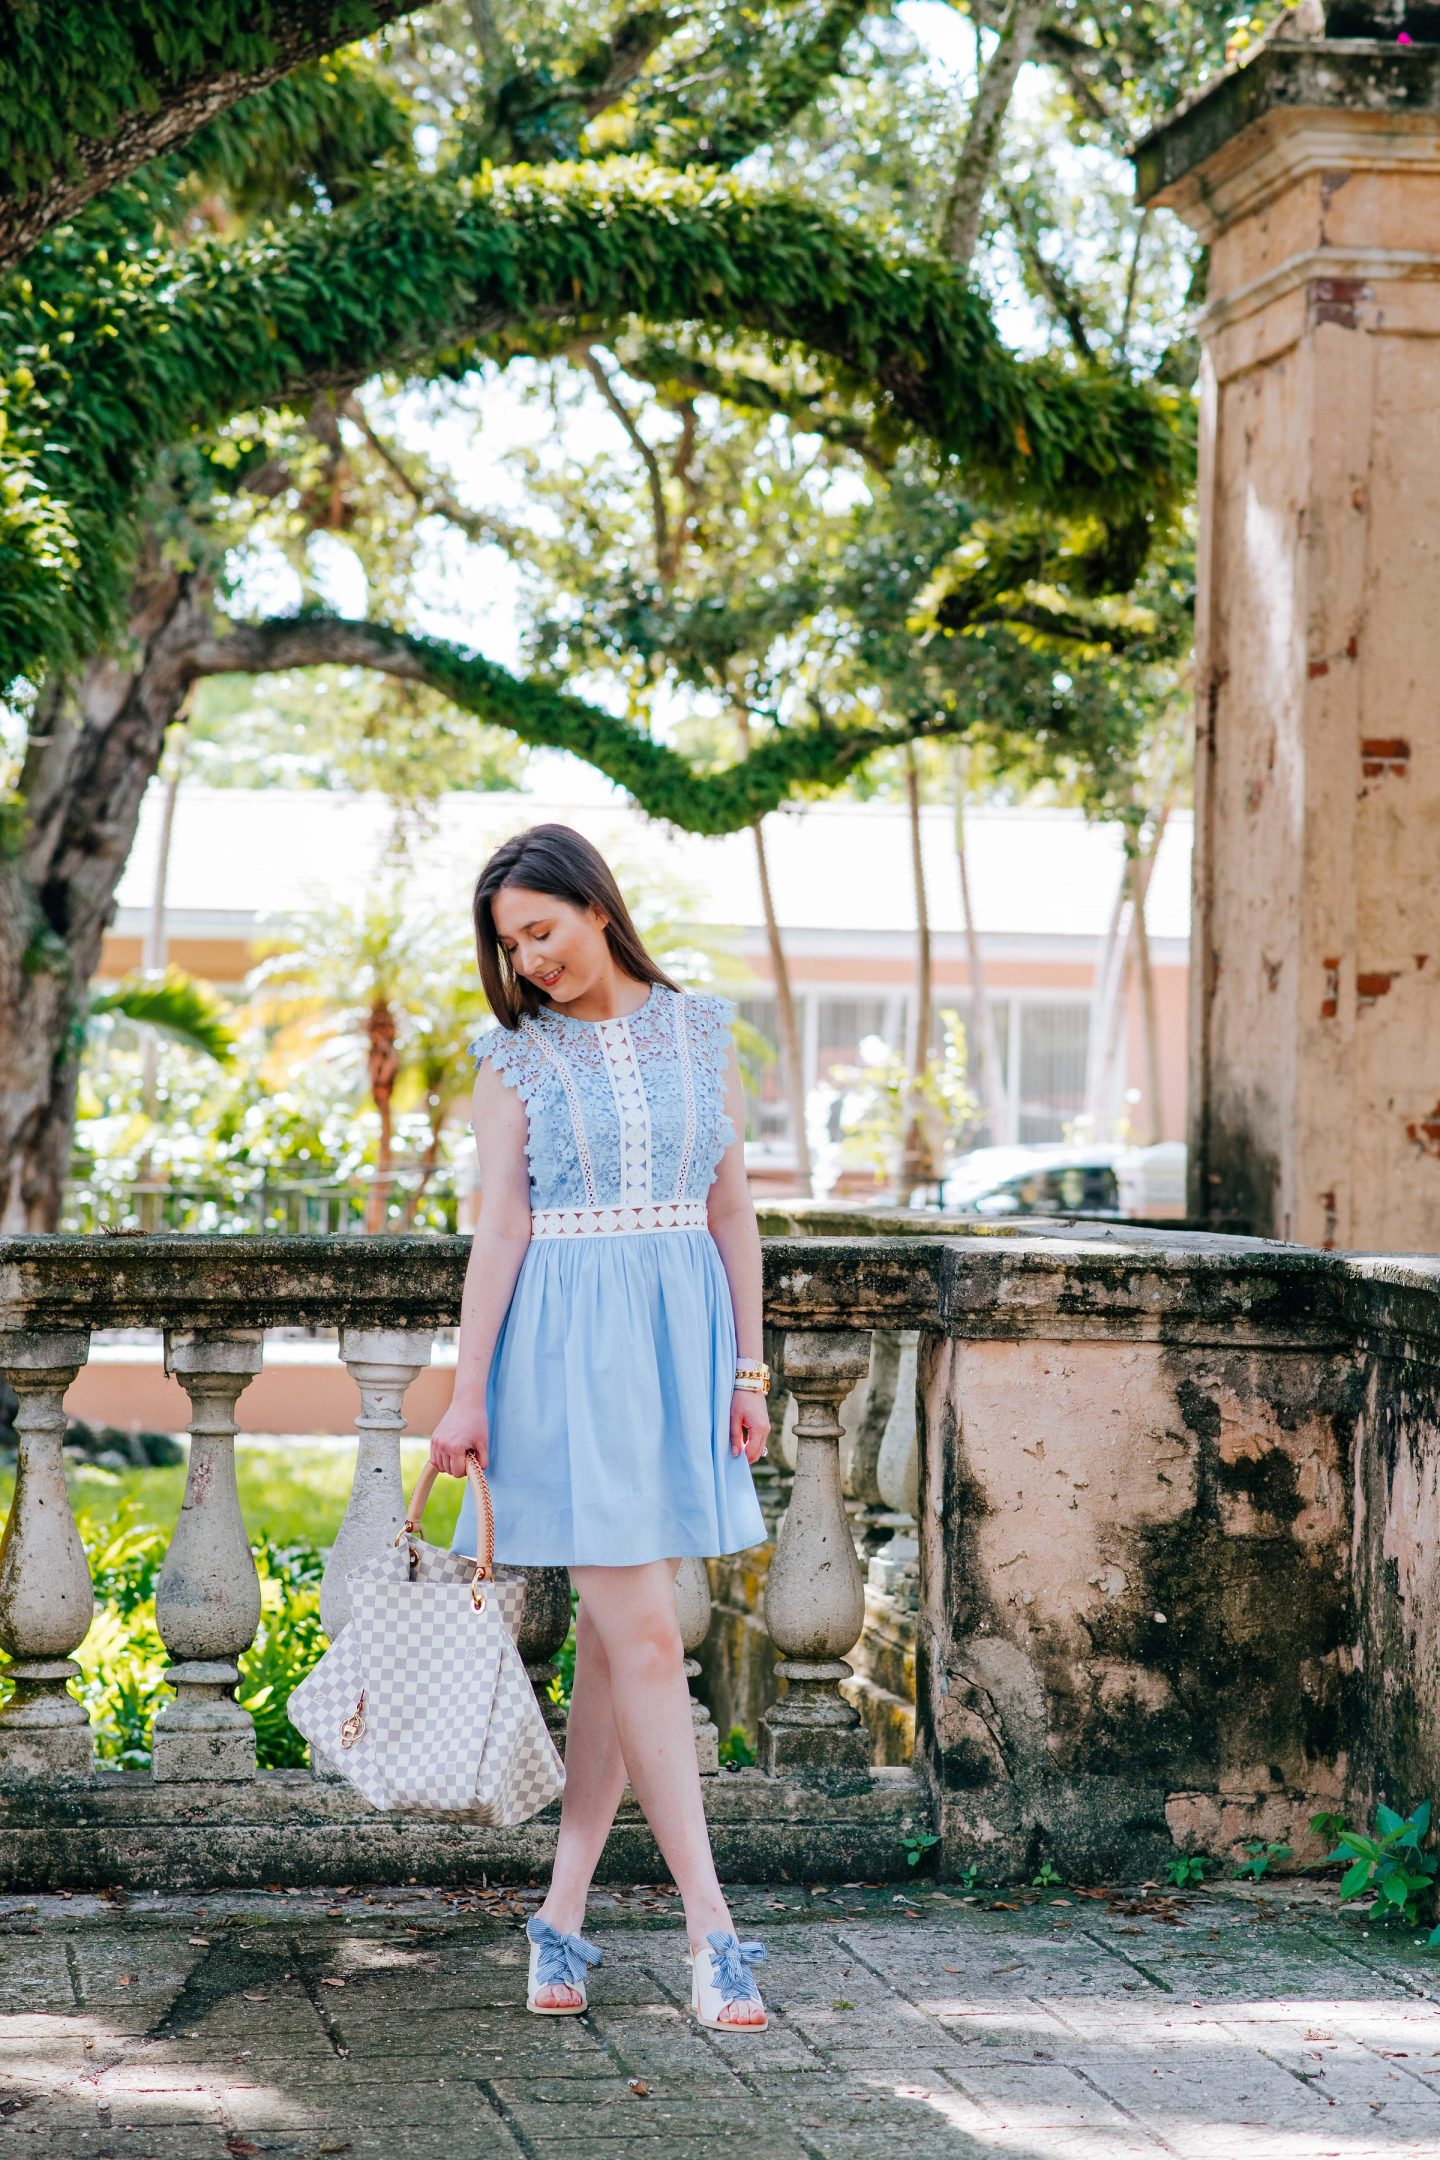 Bloomingdales, bloomingdales dress, Bloomingdales finds: the cutest outfits for the best prices, aqua, aqua at bloomingdales, AQUA Lace & Poplin Fit-and-Flare Dress, dolce vita shoes, dolce vita amber lace-up sandal, dolce vita bow sandals